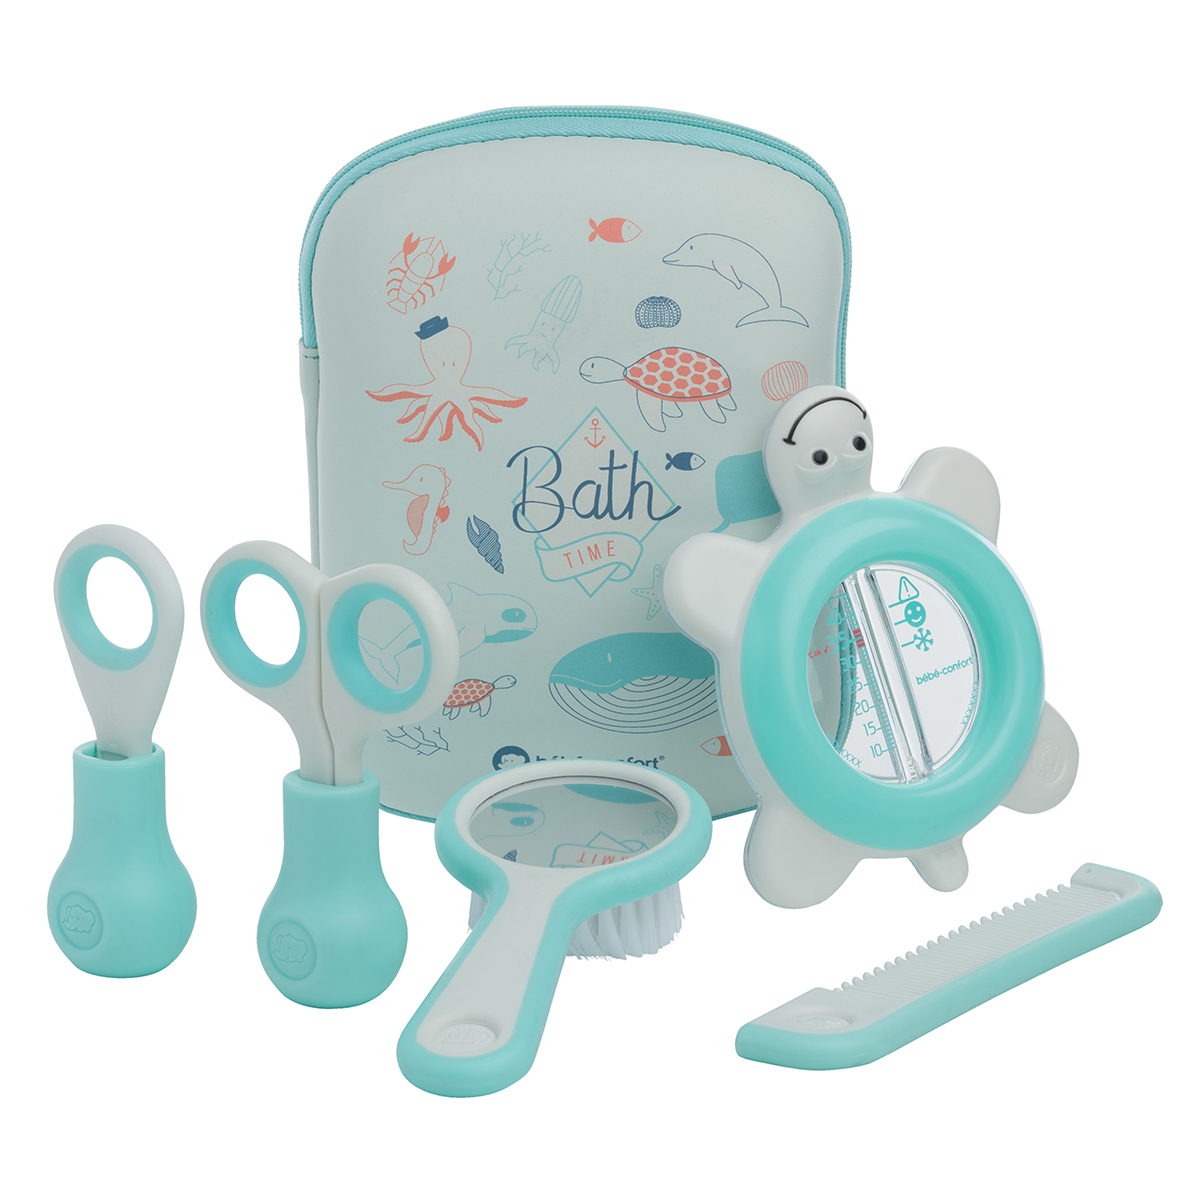 Soins enfant Set de Toilette - Waterwolrd Set de Toilette - Waterwolrd